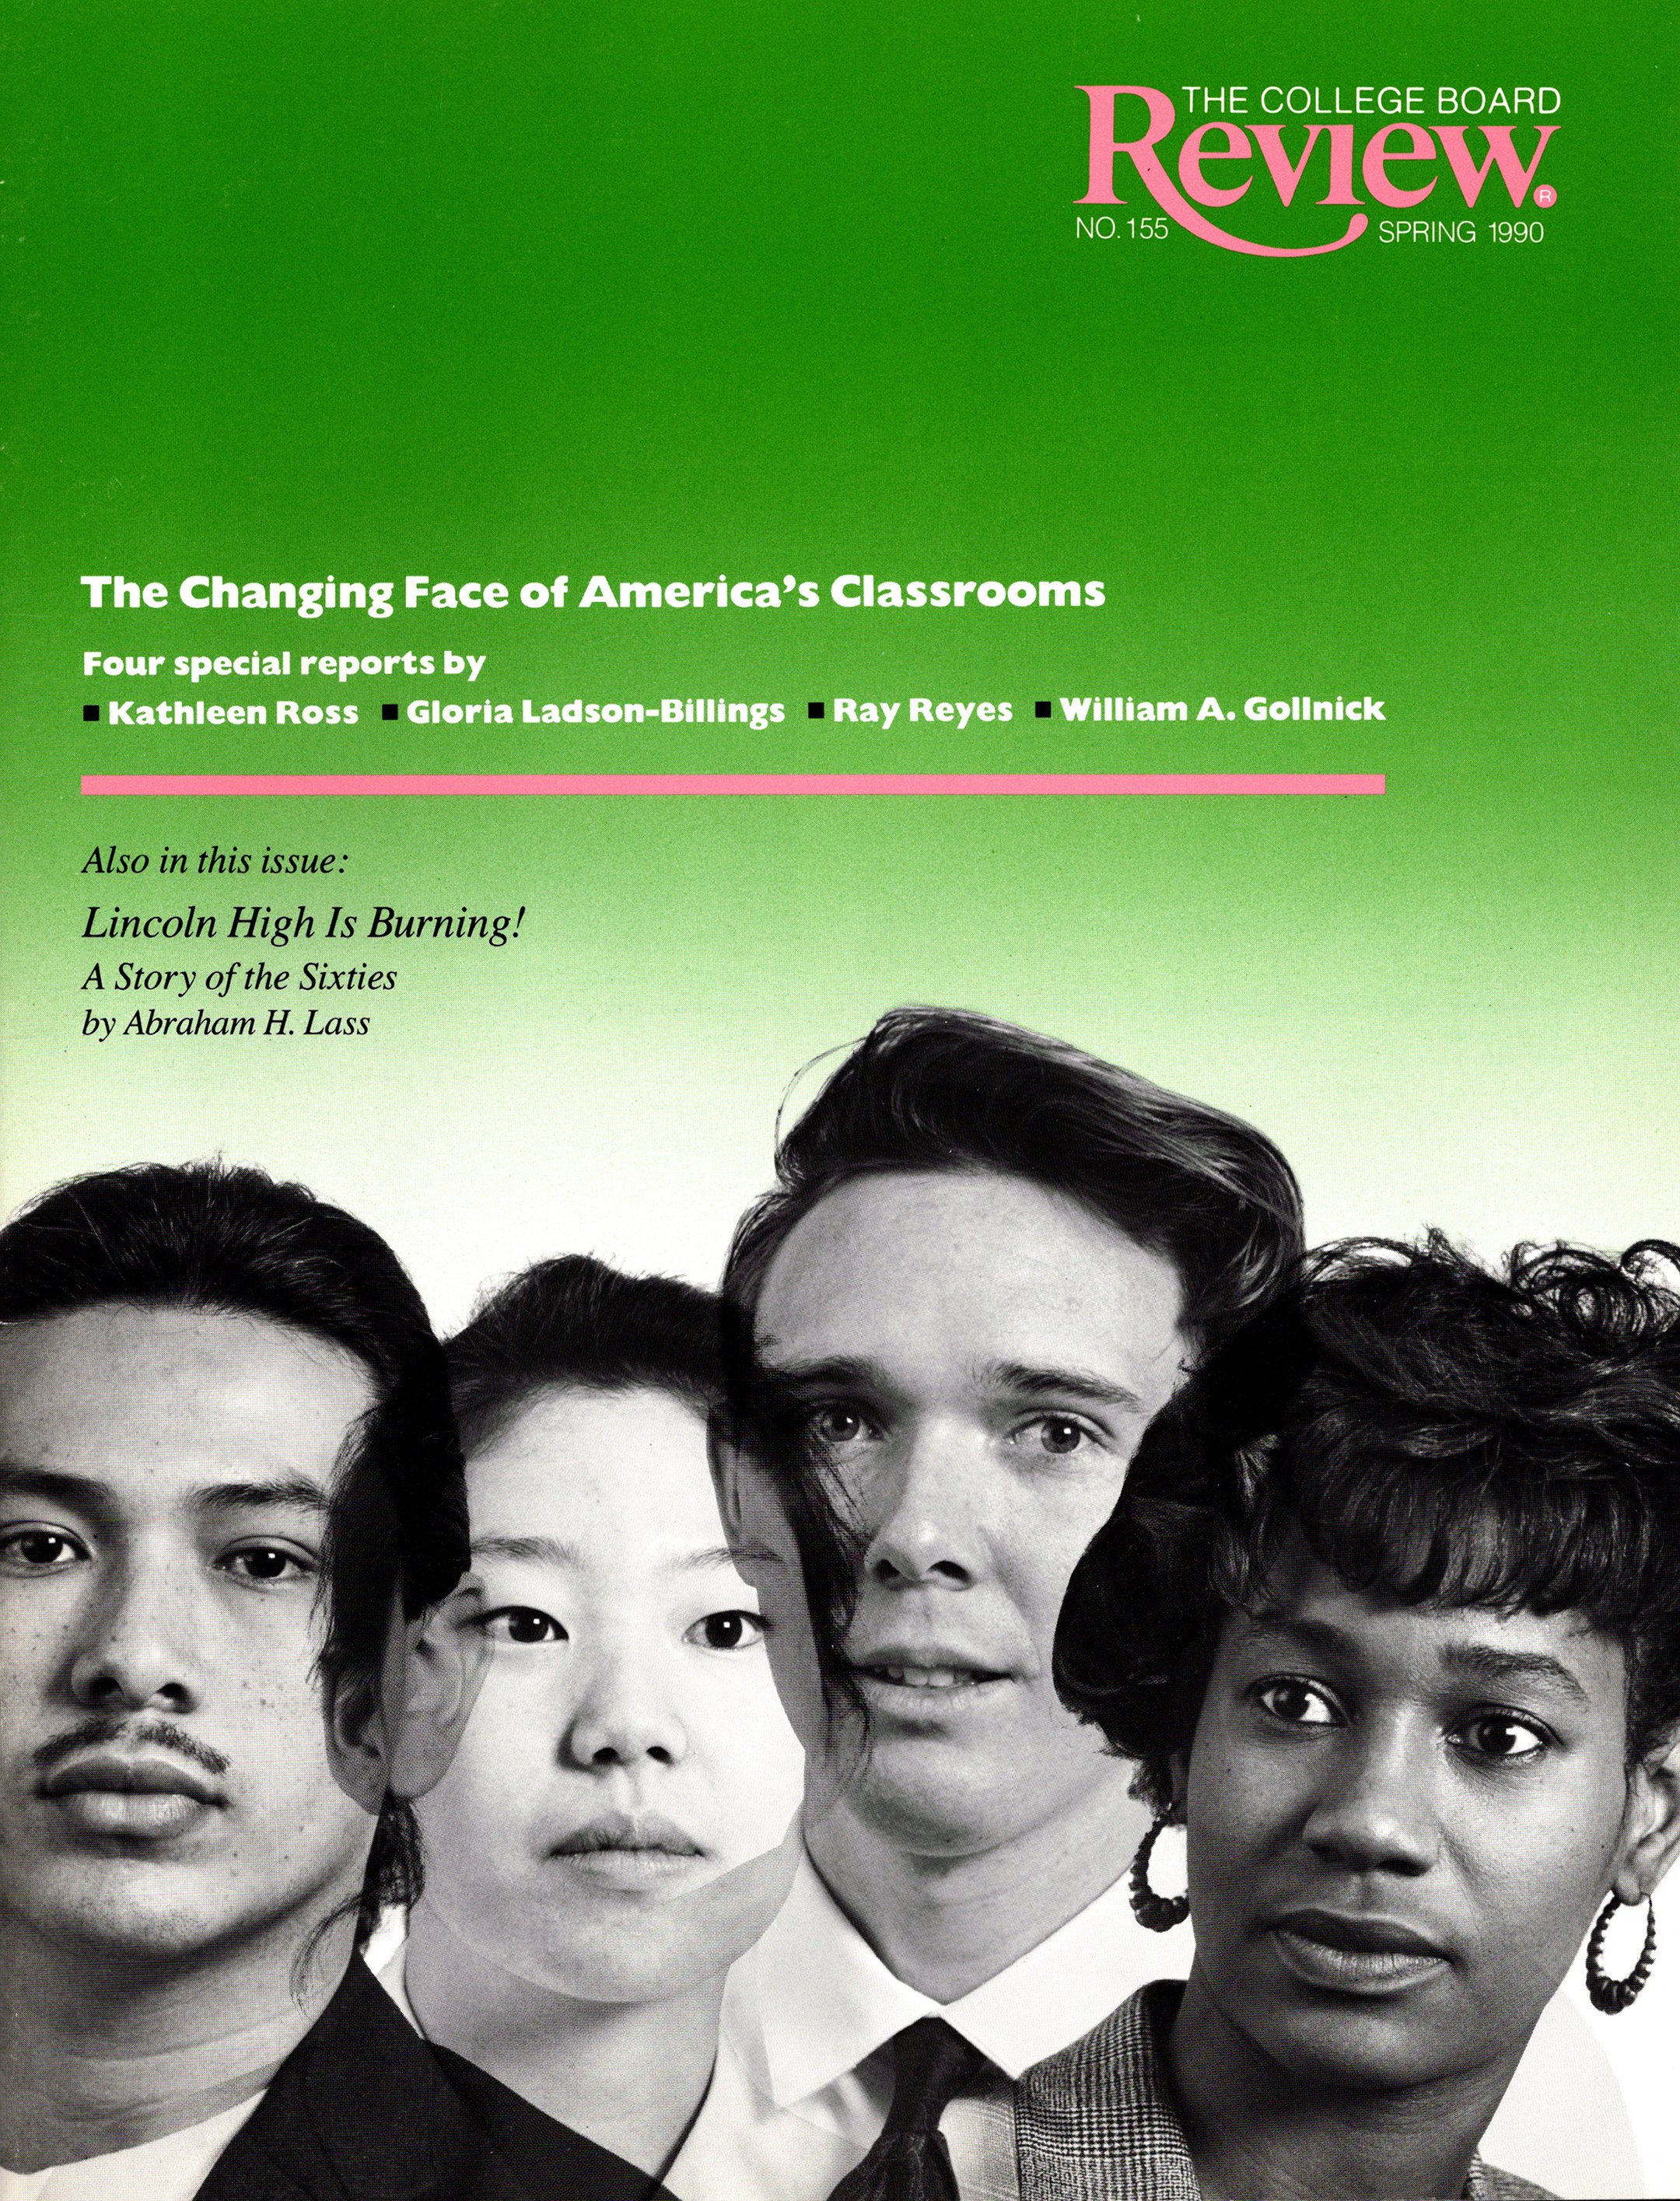 cover of the spring 1990 issue of the college board review